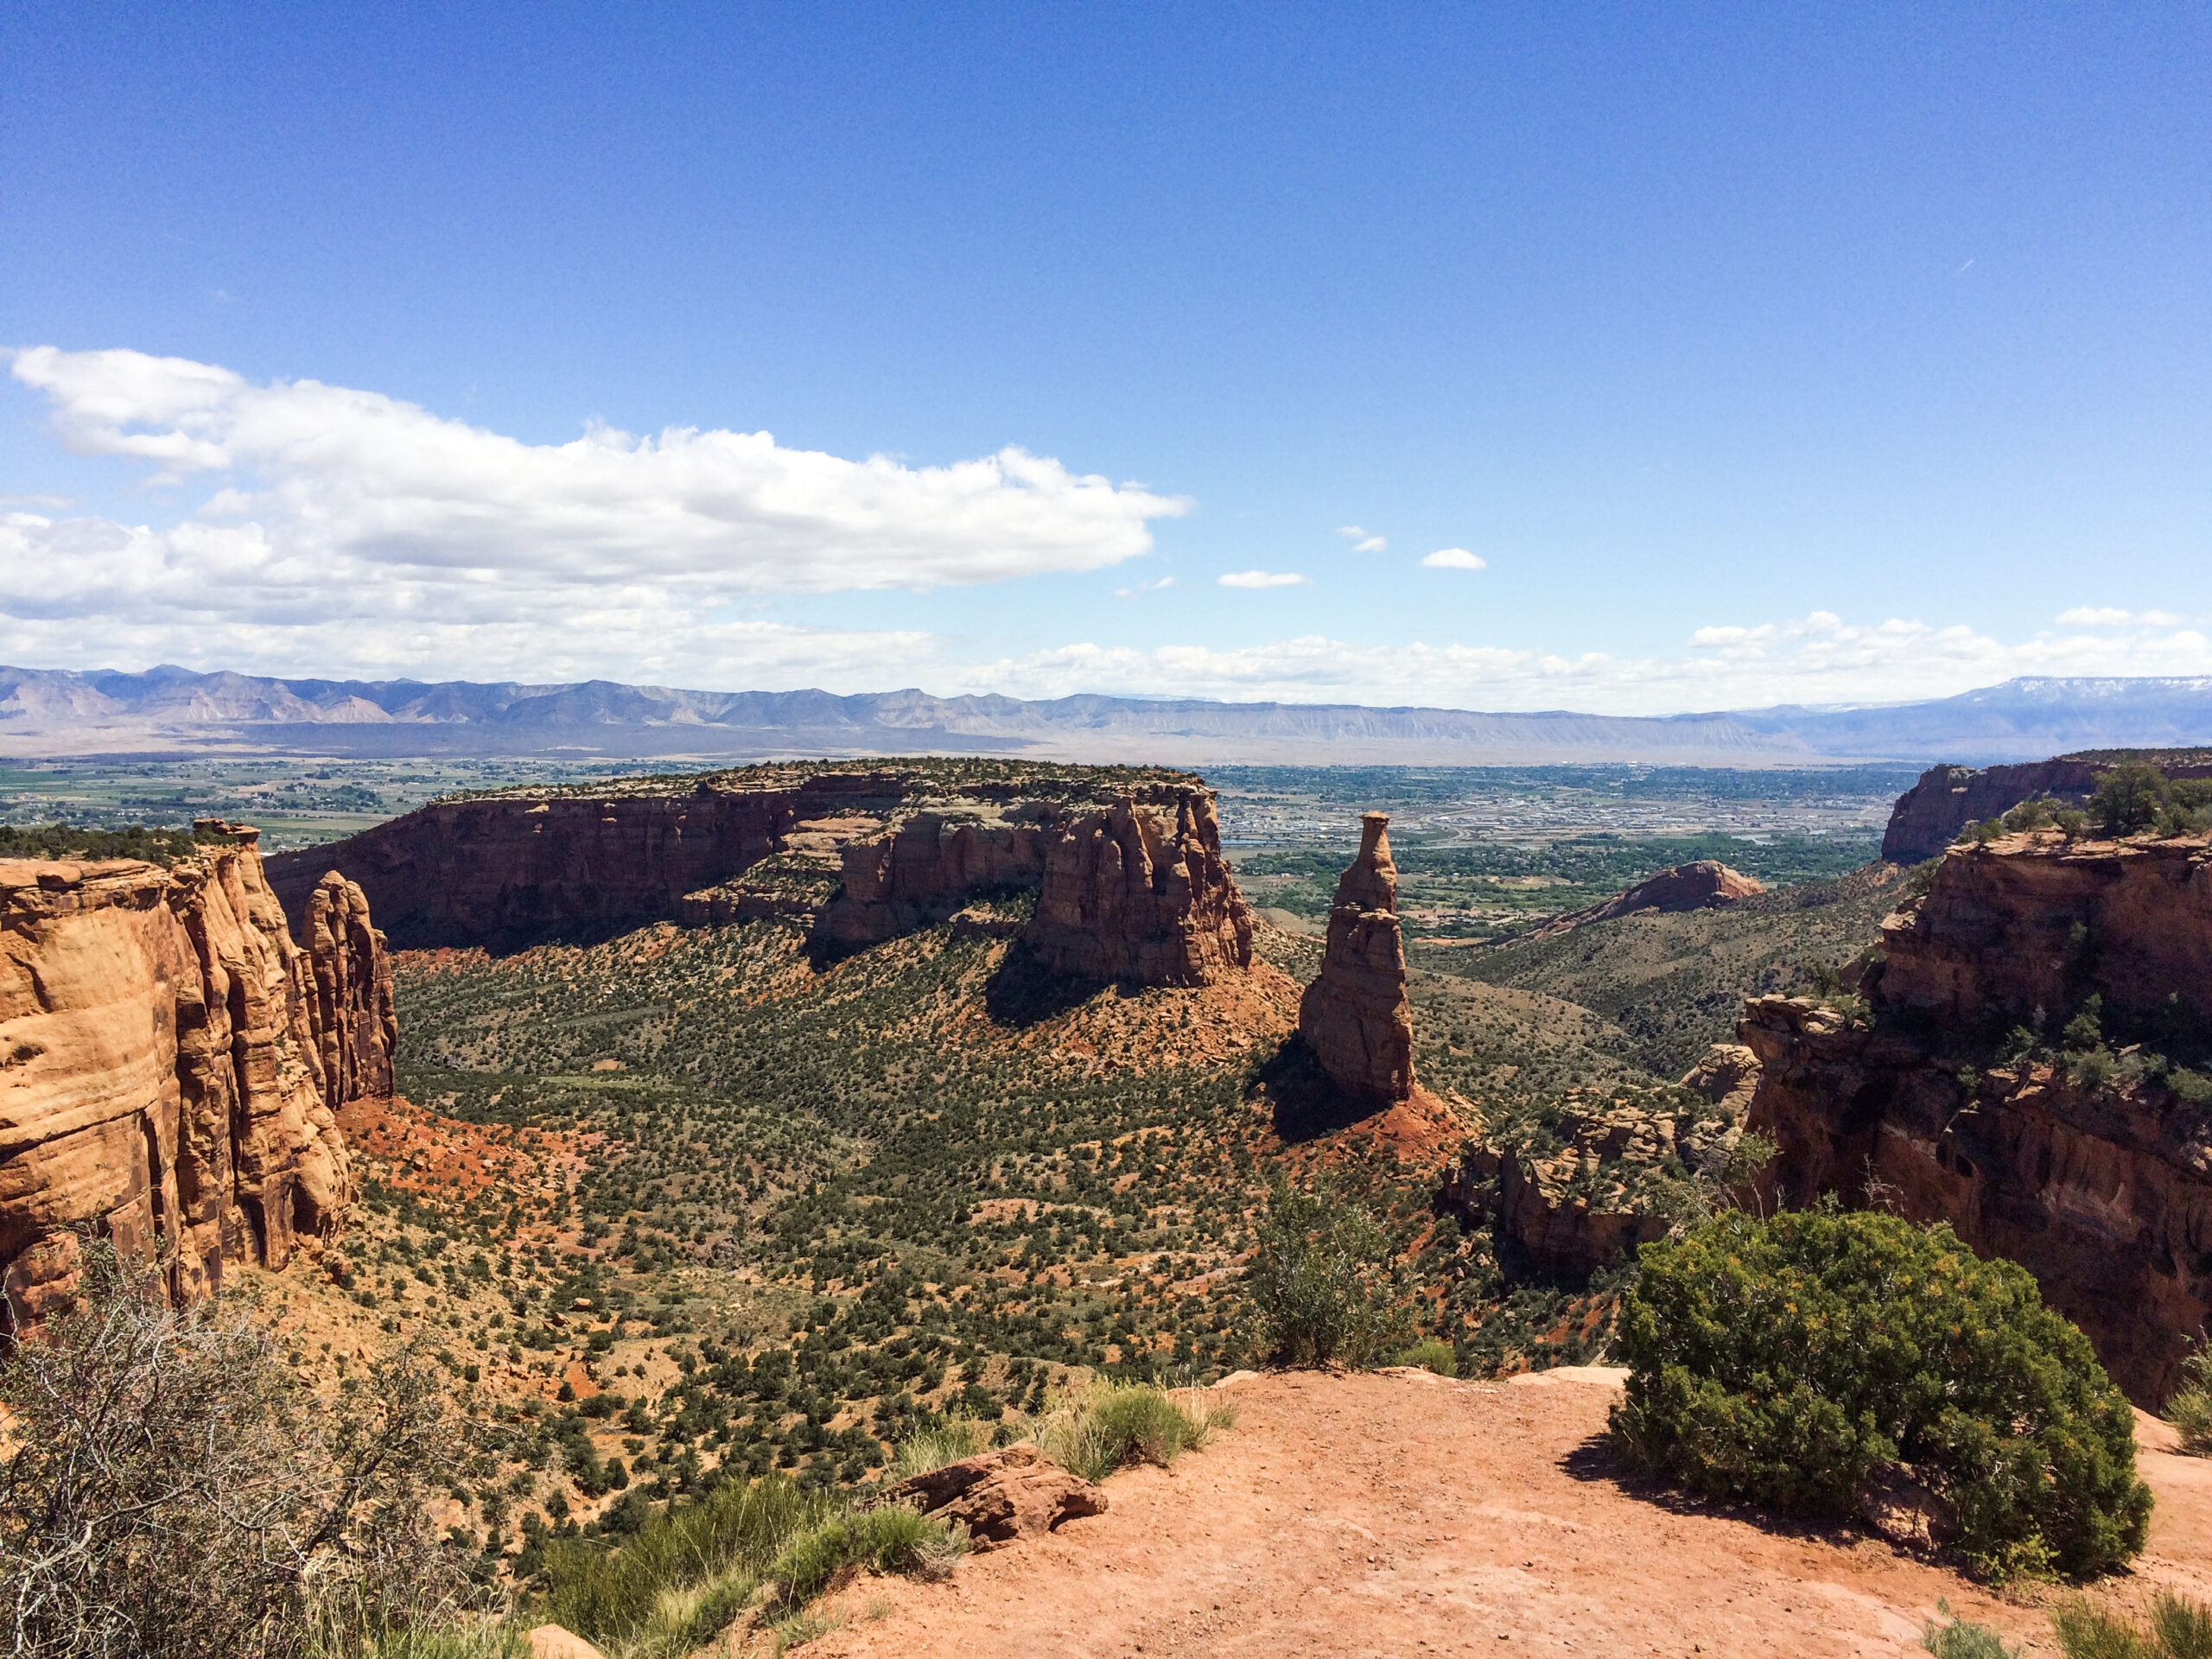 Views from the scenic Rim Rock Drive on the Colorado National Monument